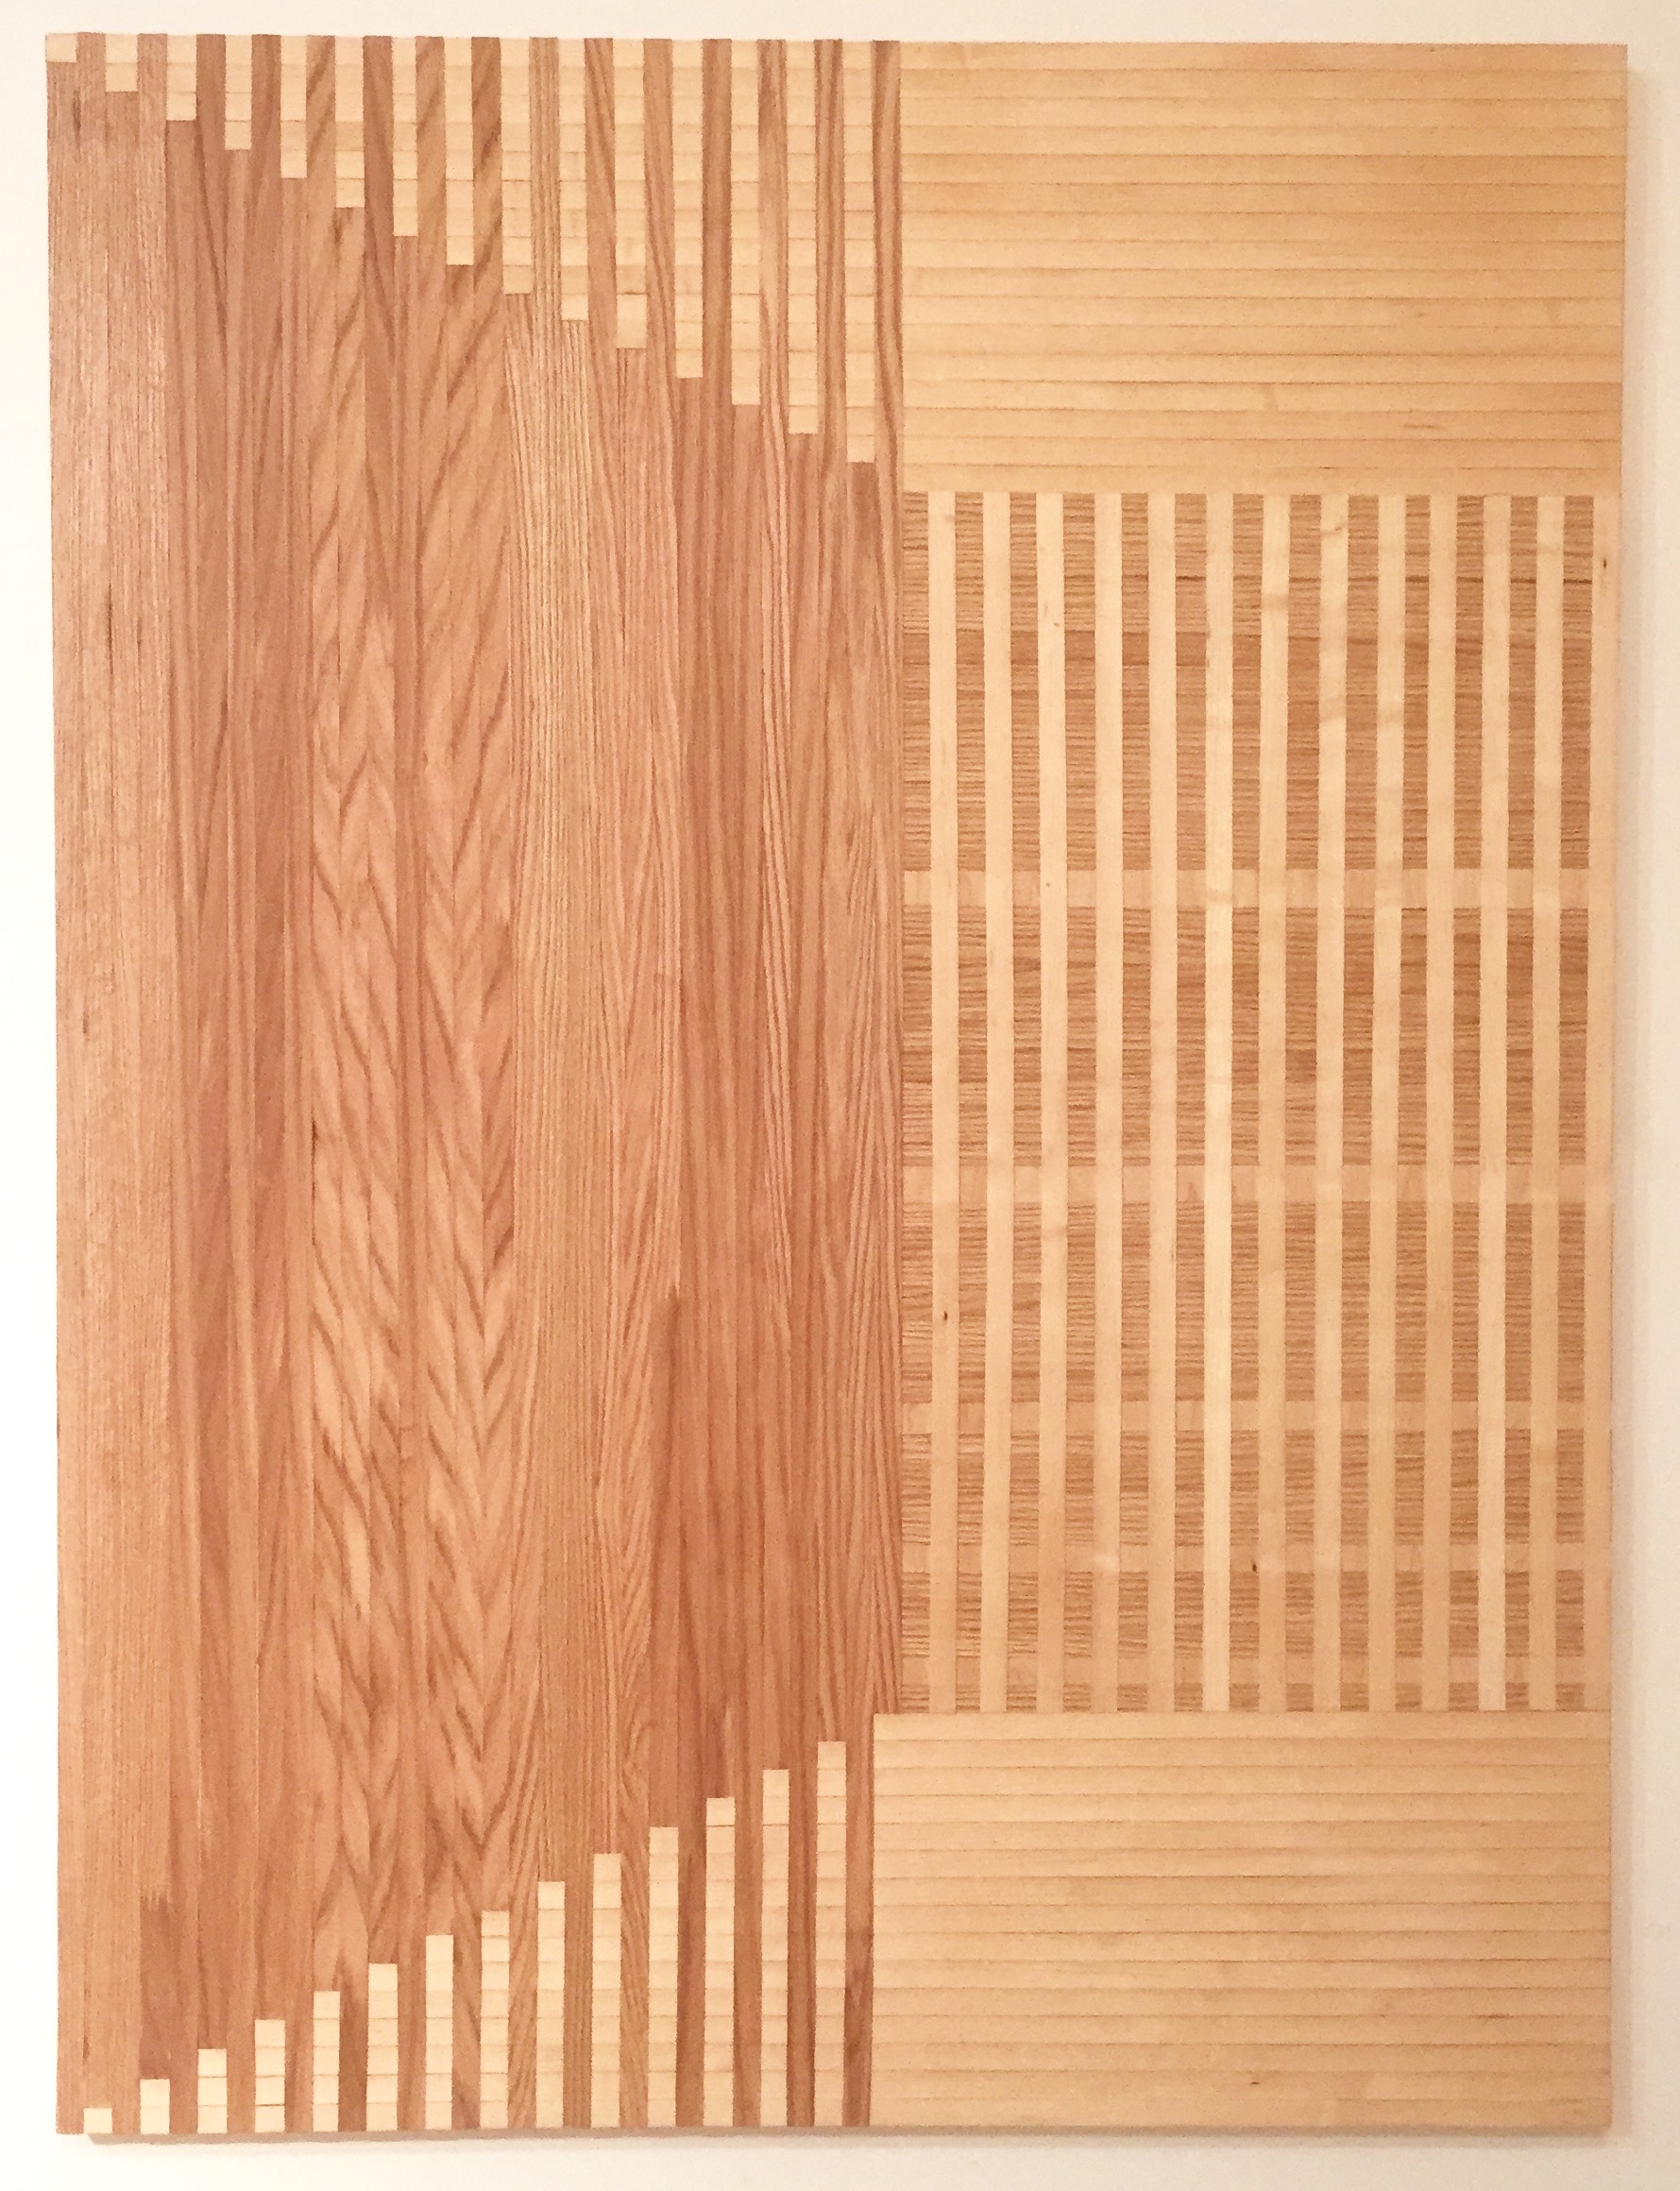 denouement  2015 red oak and birch veneer edge banding on panel  60 x 45 in